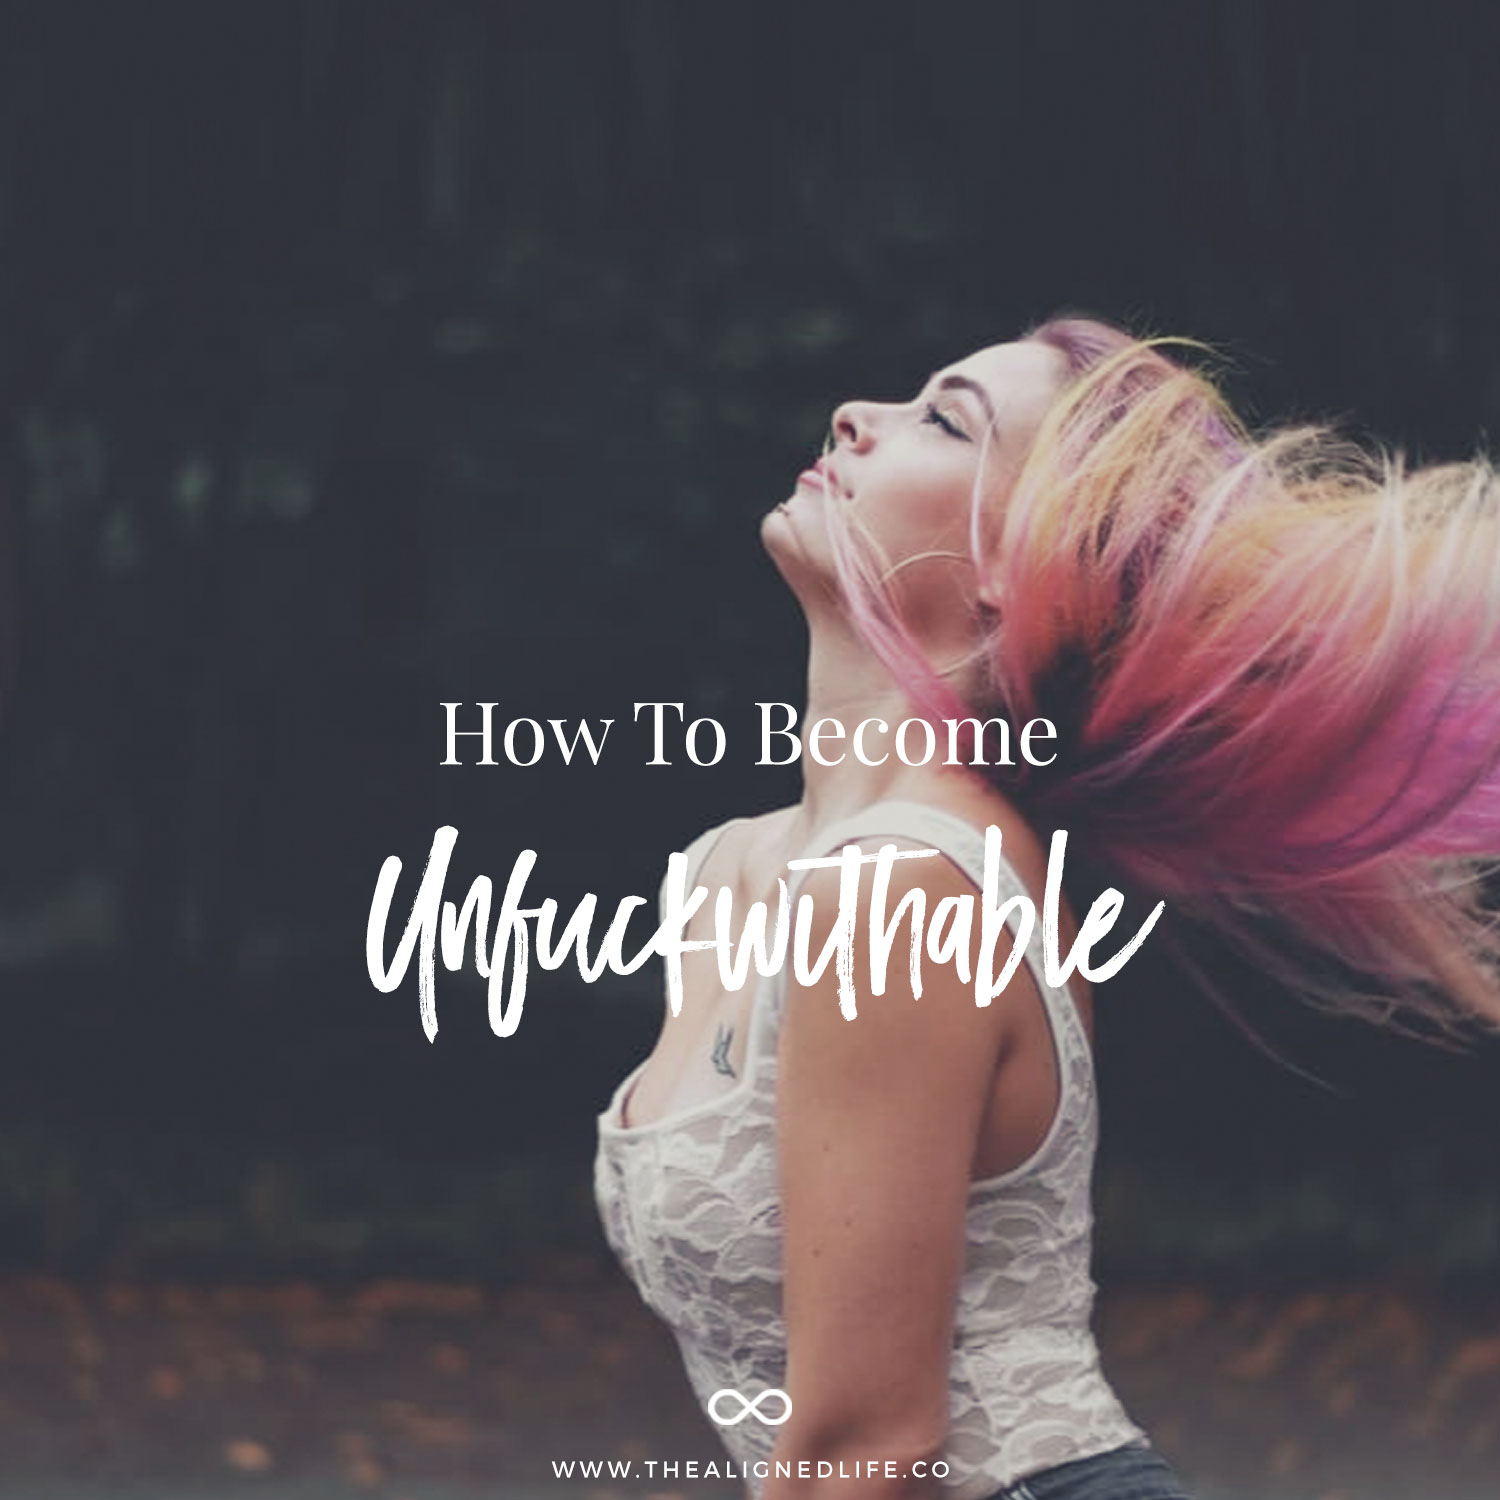 How To Become Unfuckwithable